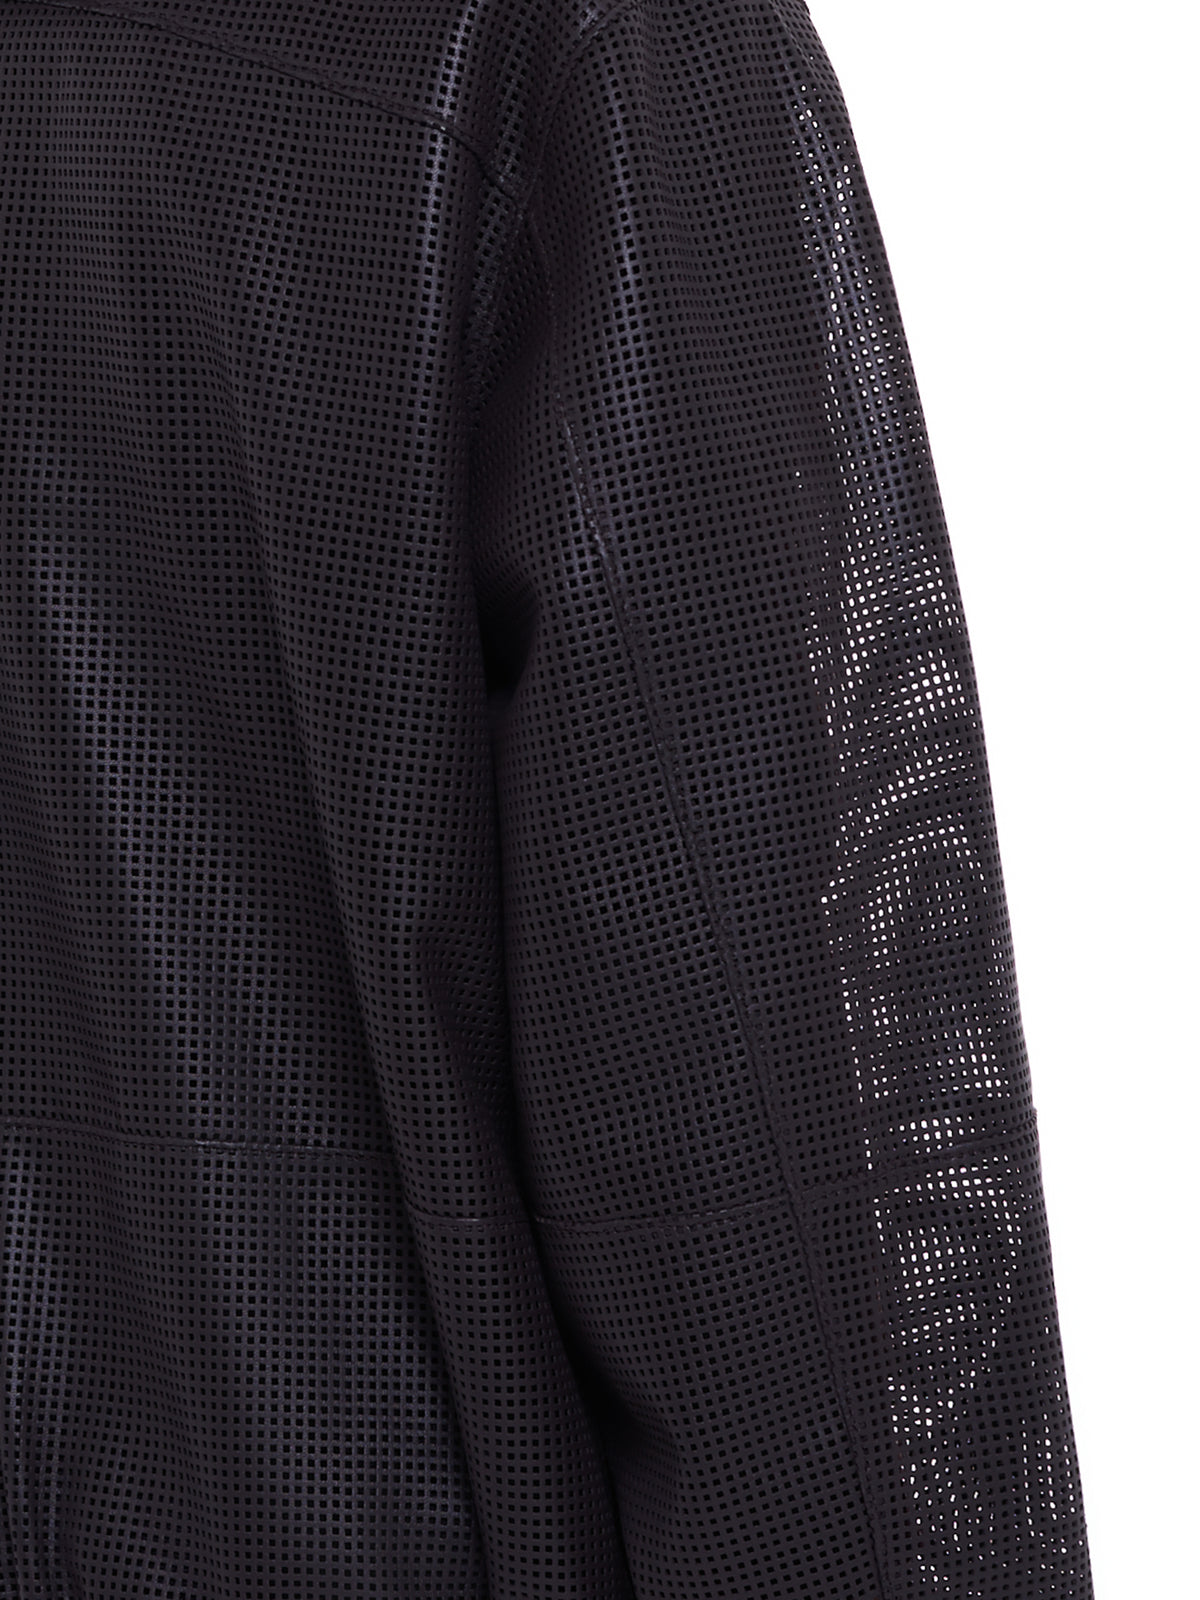 Bottega Veneta Leather Jacket | H.Lorenzo Detail 2